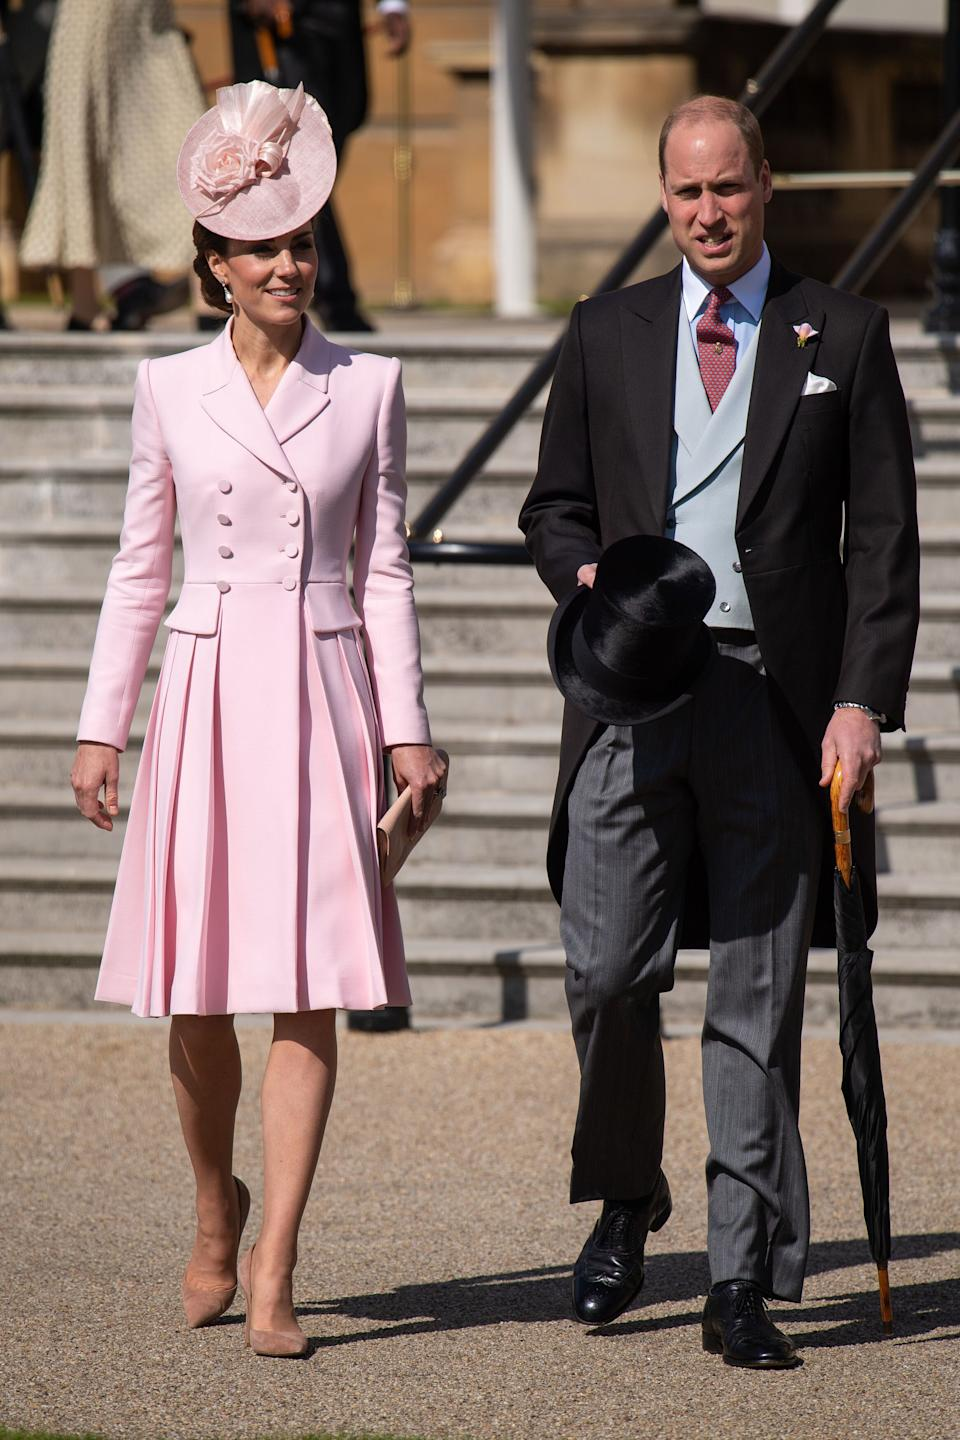 The Duke and Duchess of Cambridge attending the Royal Garden Party at Buckingham Palace in London.